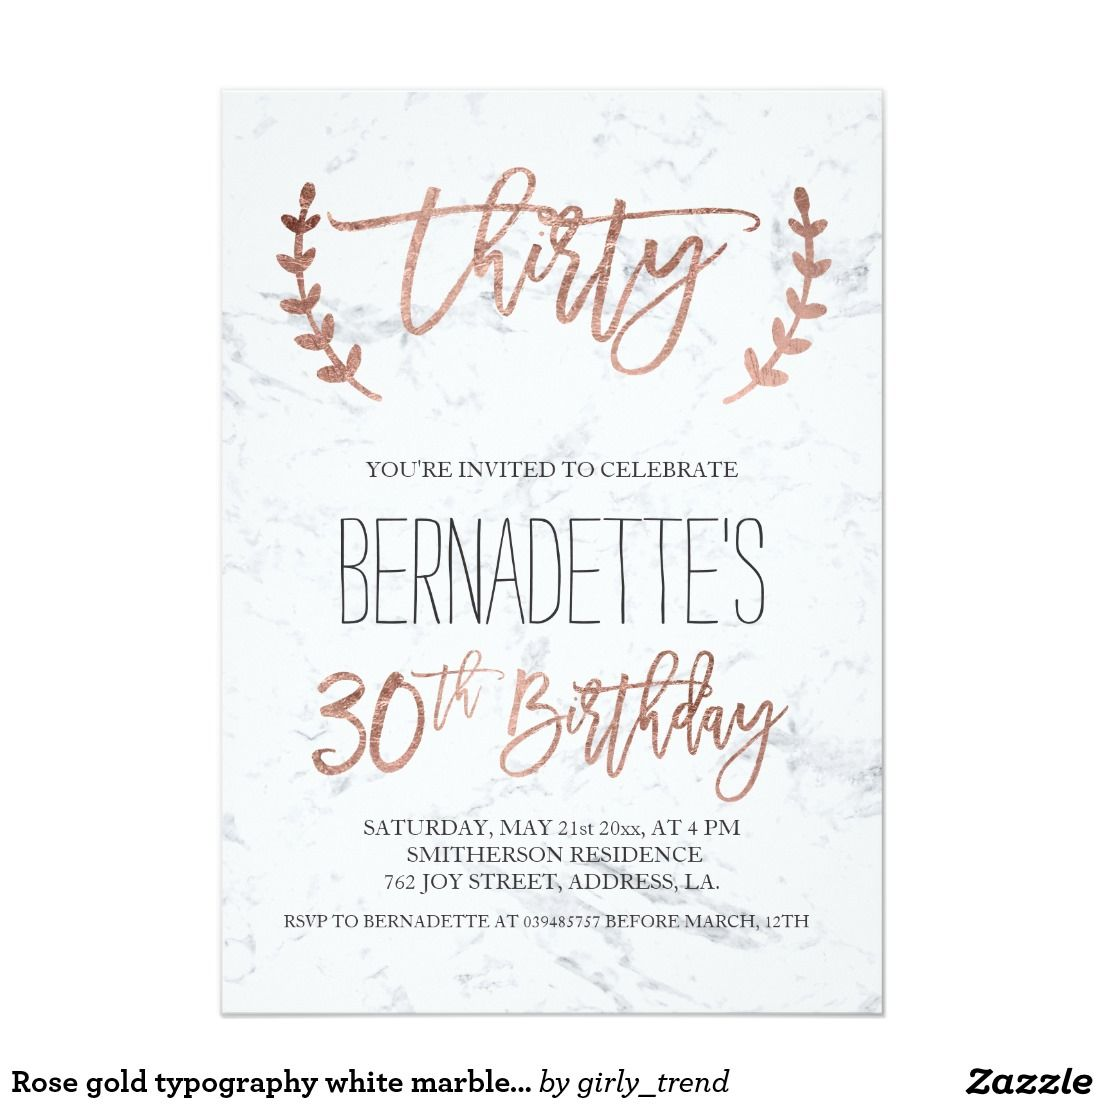 Rose gold typography white marble 30th Birthday Card | 30th ...